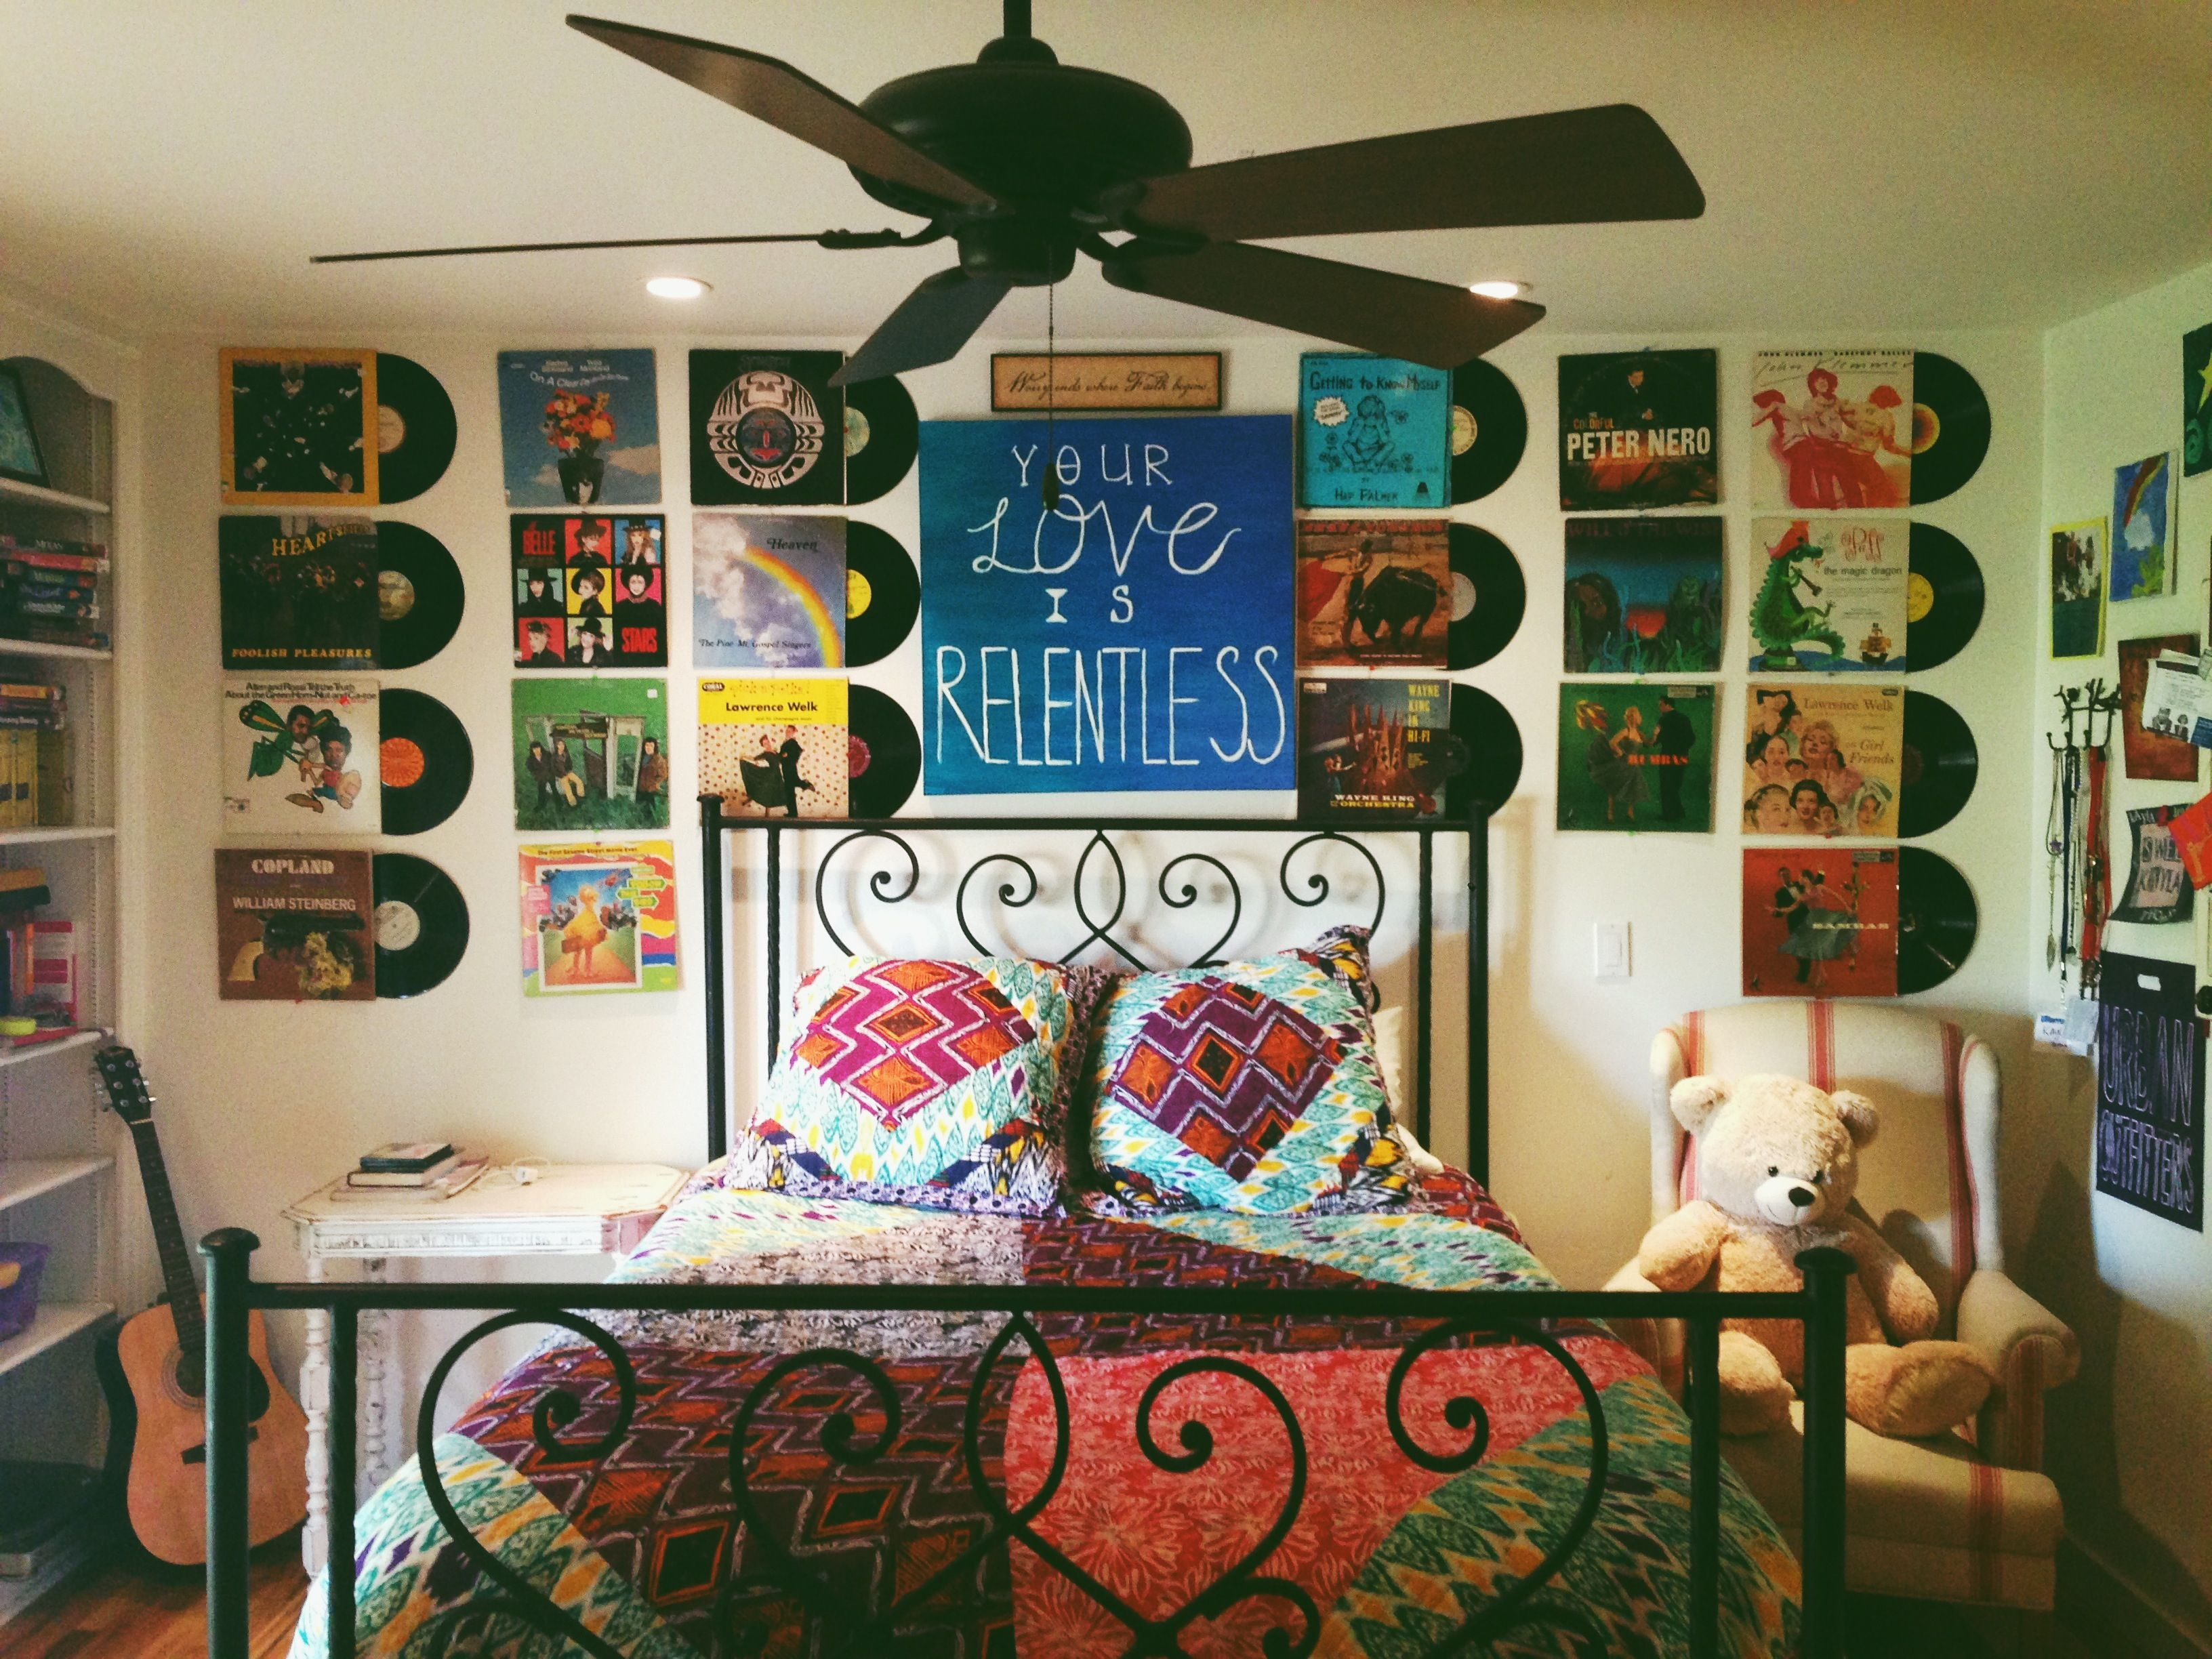 My Bedroom Was Covered In Art And Old Vinyl Records Now